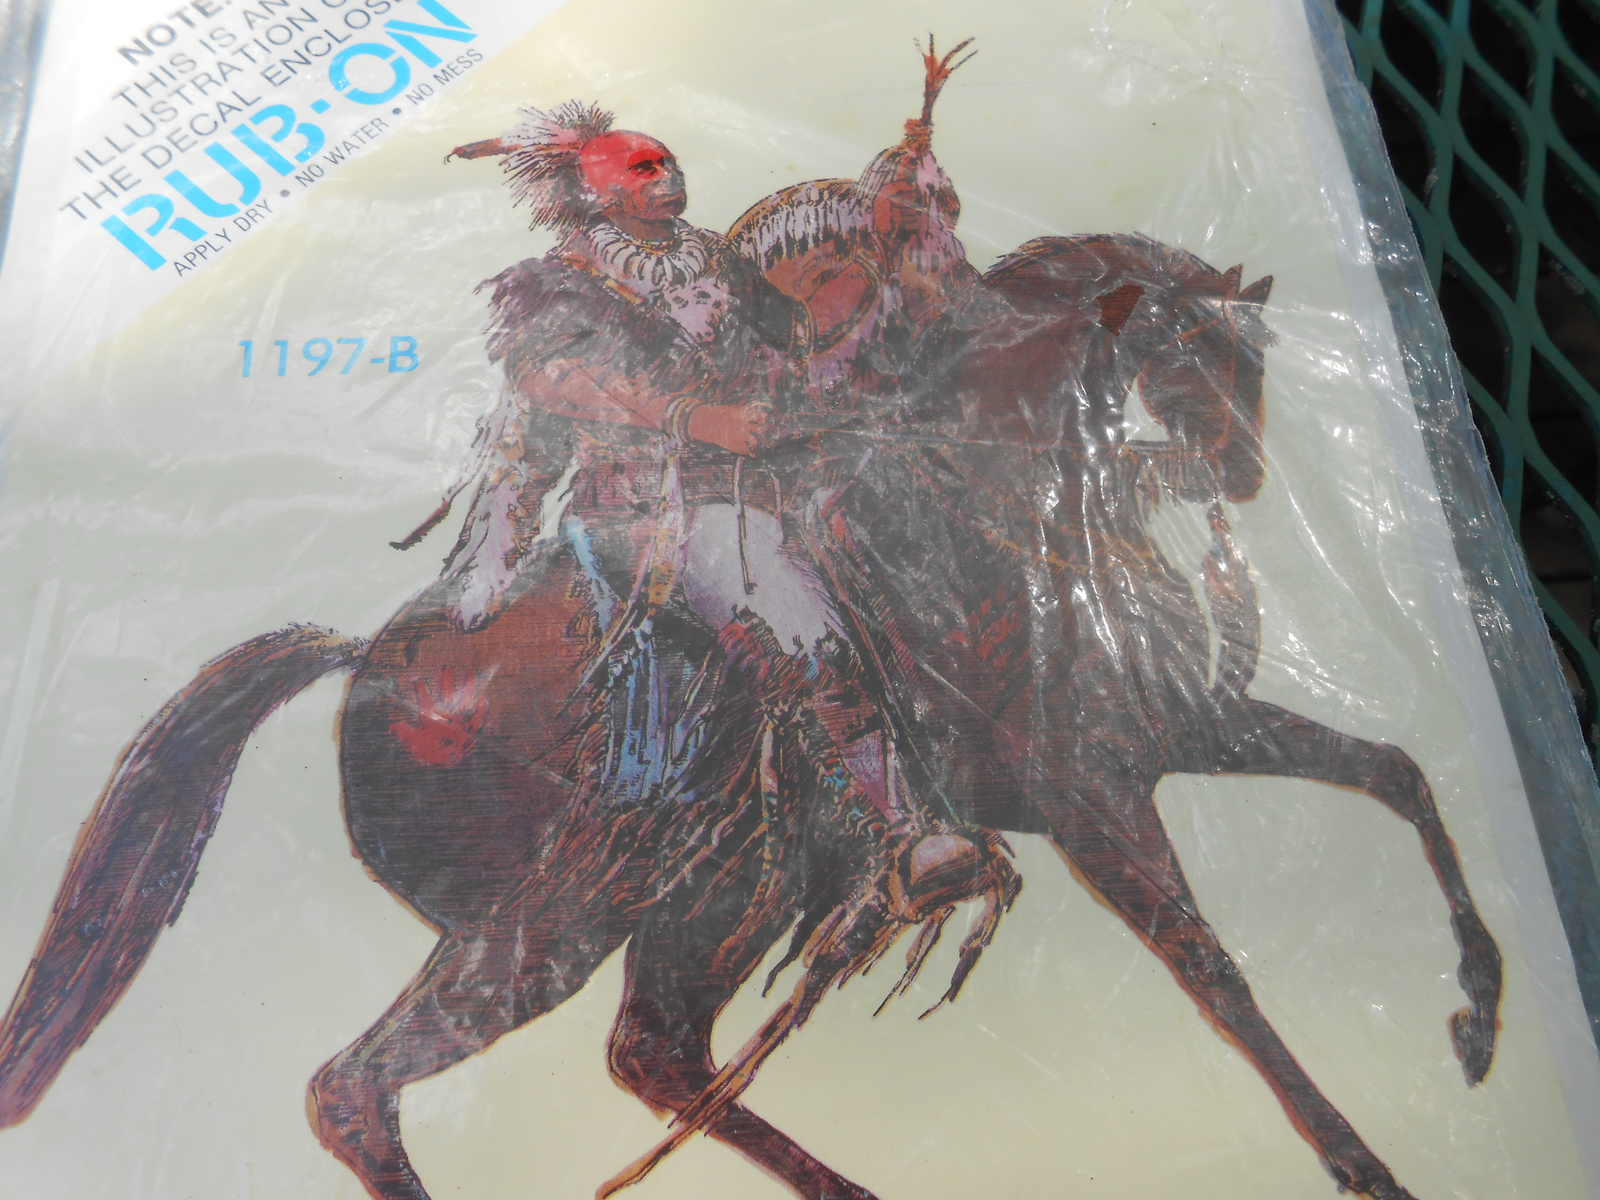 Vintage North American Indian & Horse Decal 1980